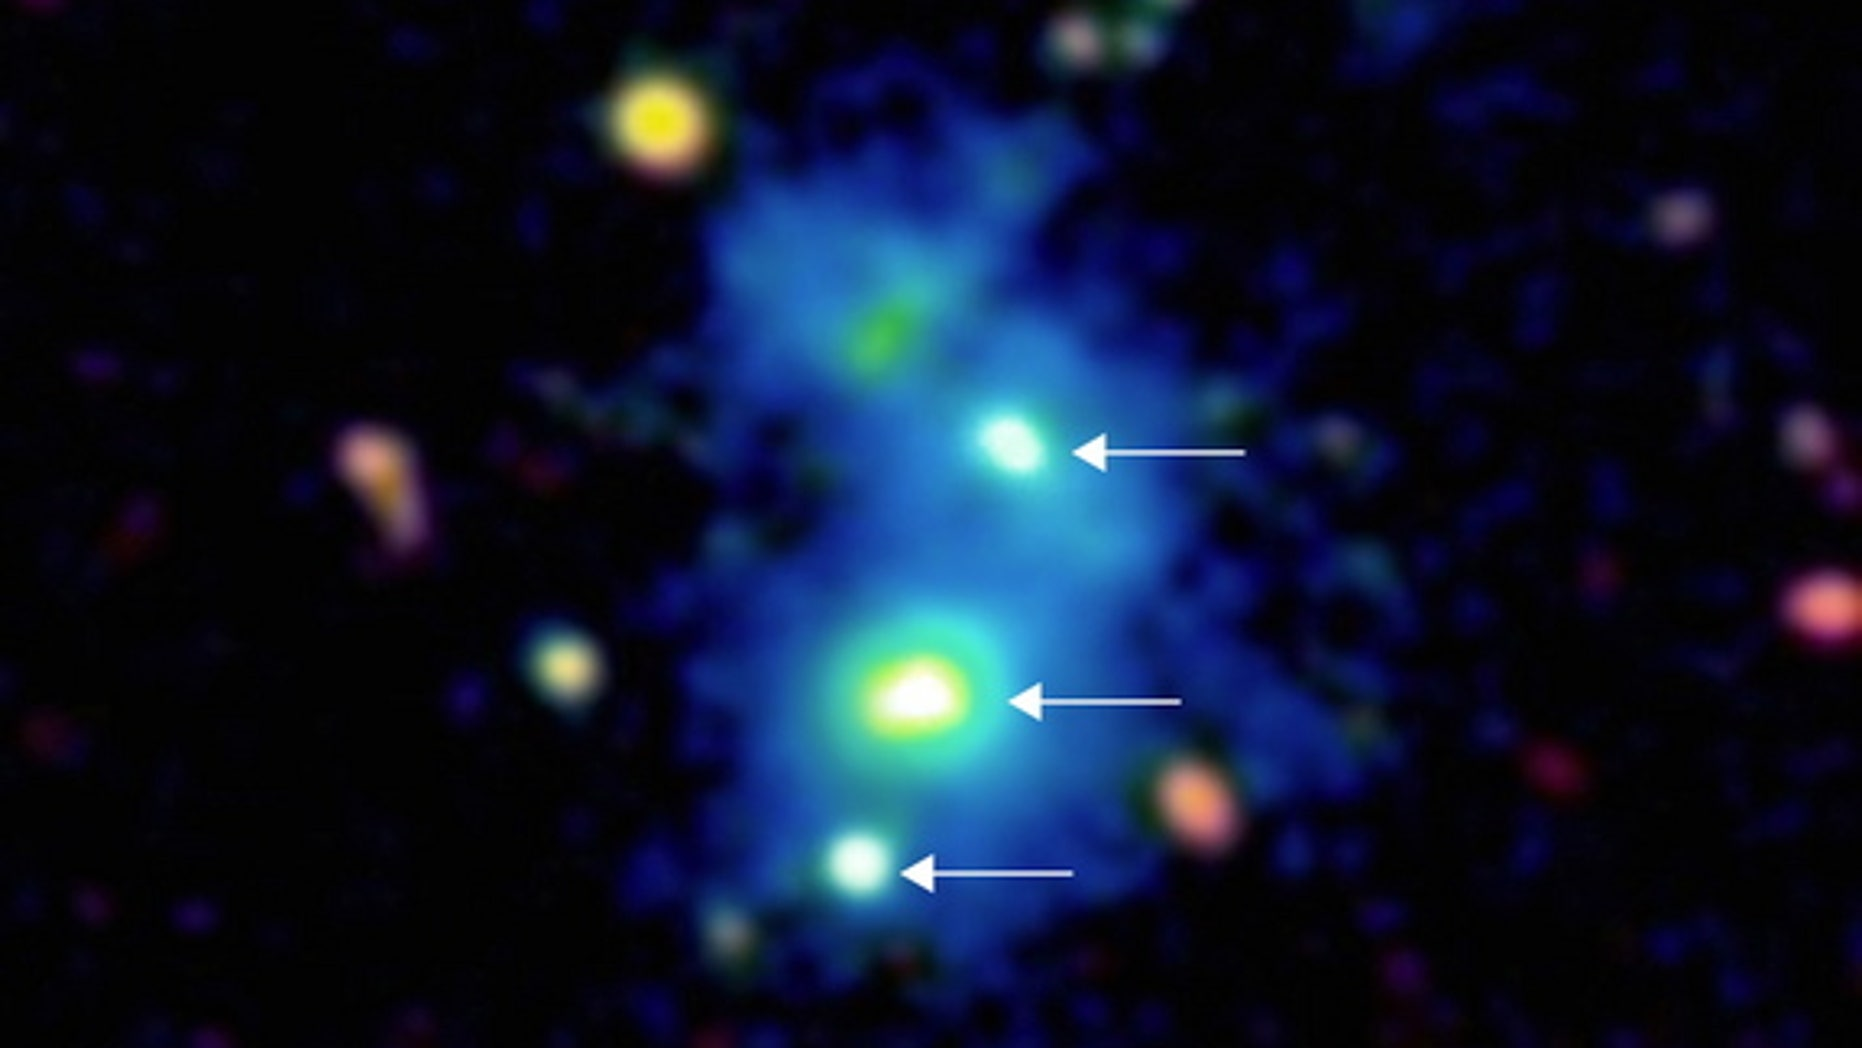 This image shows a rare view of four quasars, indicated by white arrows, found together by astronomers using the Keck Observatory in Hawaii. The bright galactic nuclei are embedded in a giant nebula of cool, dense gas visible in the image as a